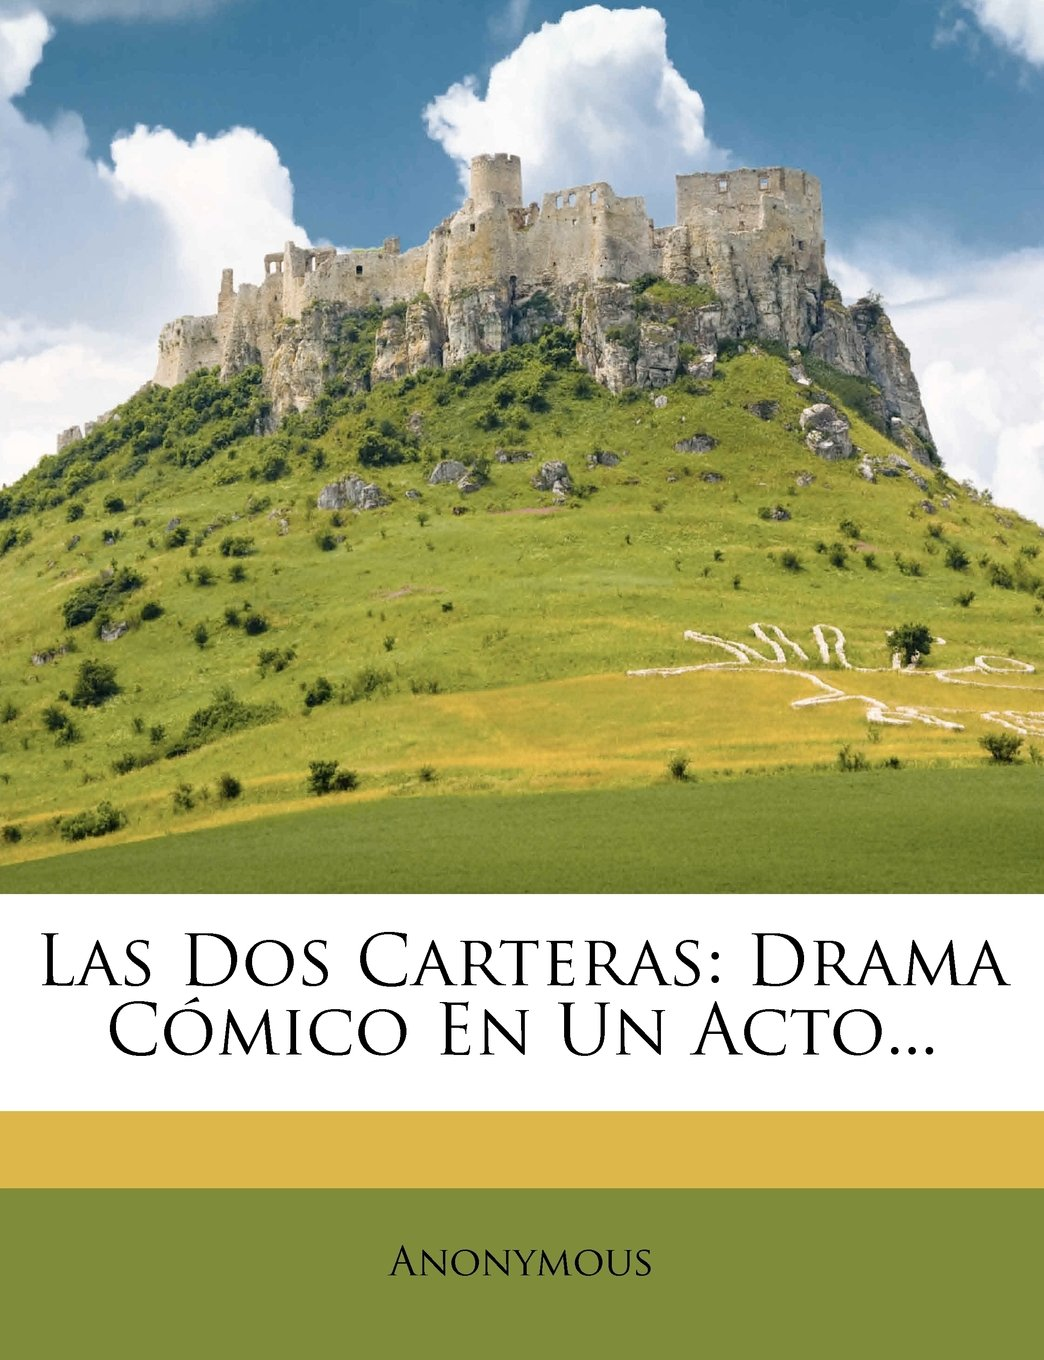 Las DOS Carteras: Drama Comico En Un Acto... (Spanish Edition): Anonymous: 9781272631192: Amazon.com: Books